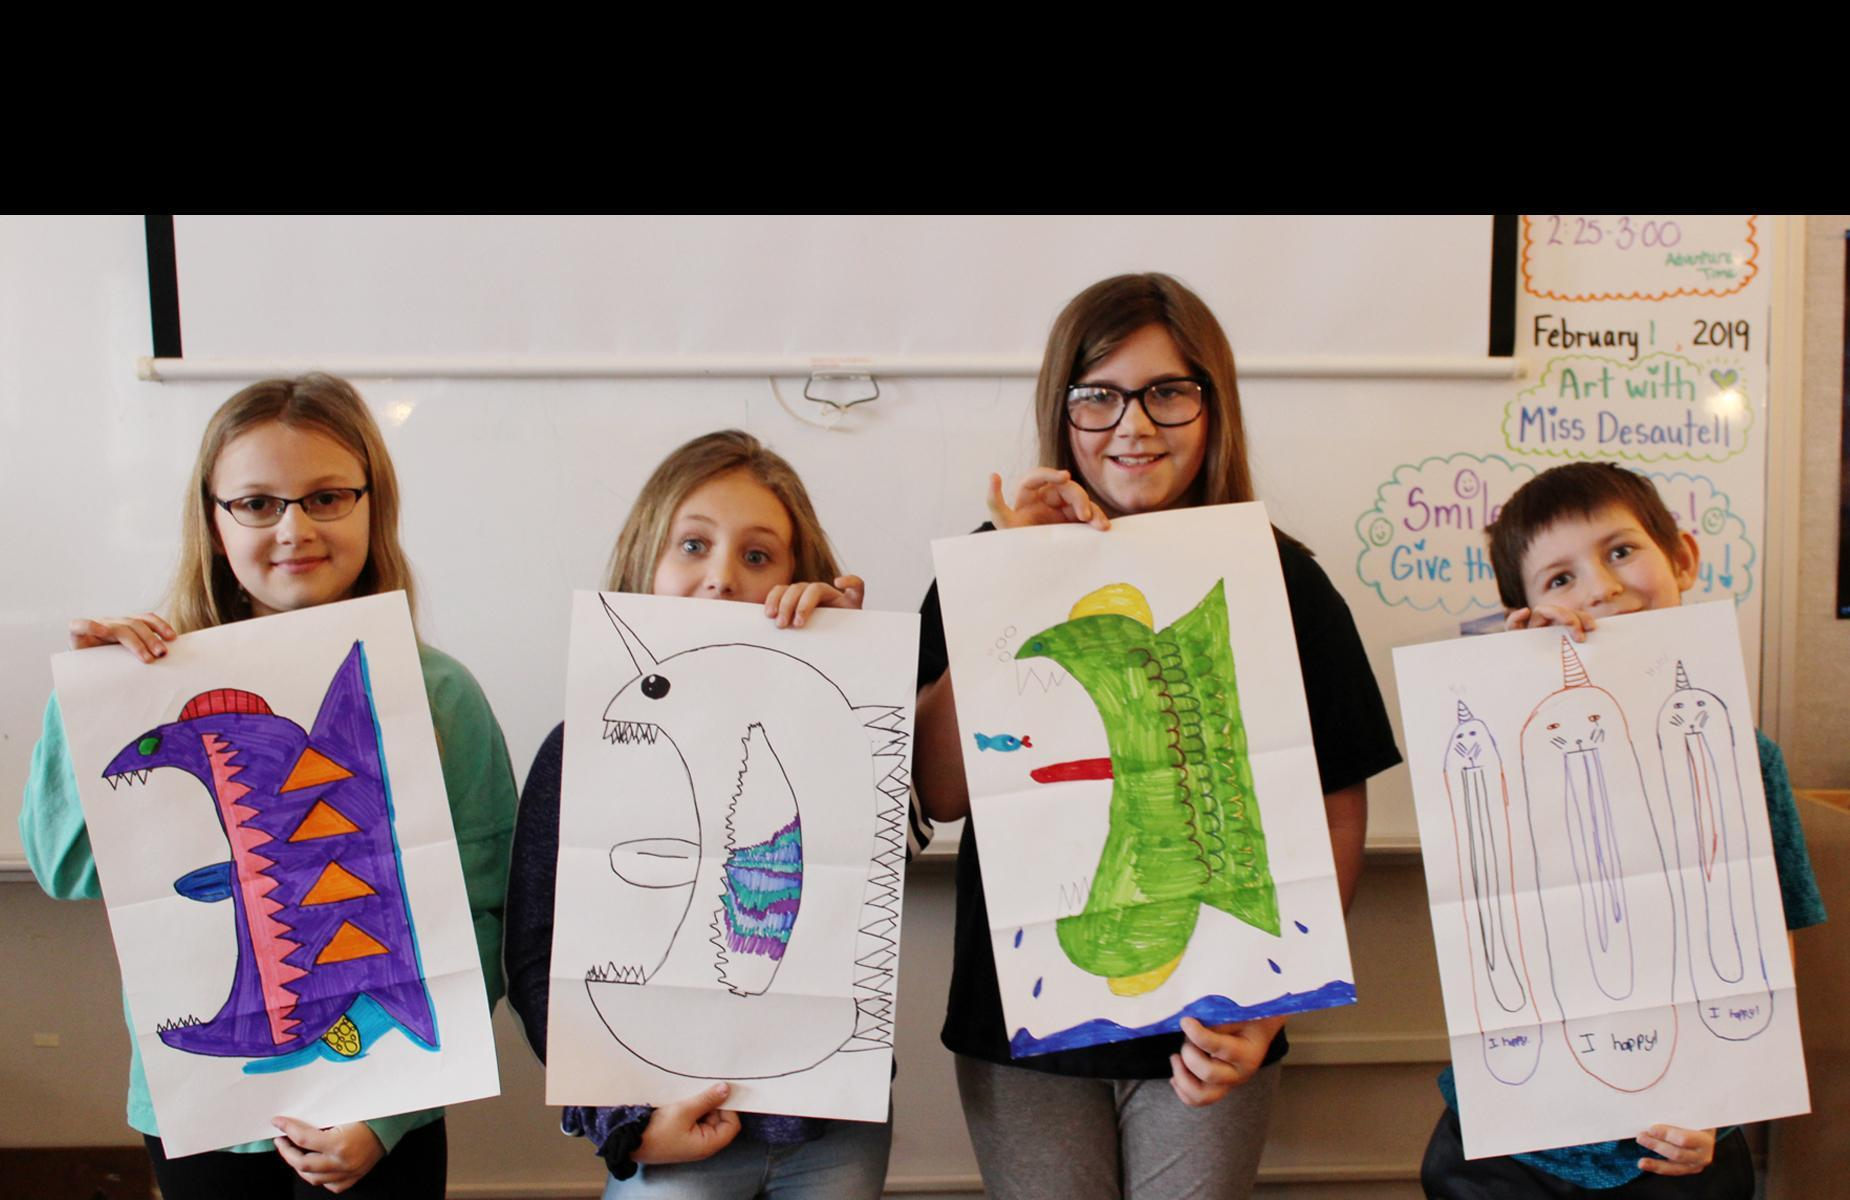 Fuller kids with fish drawings